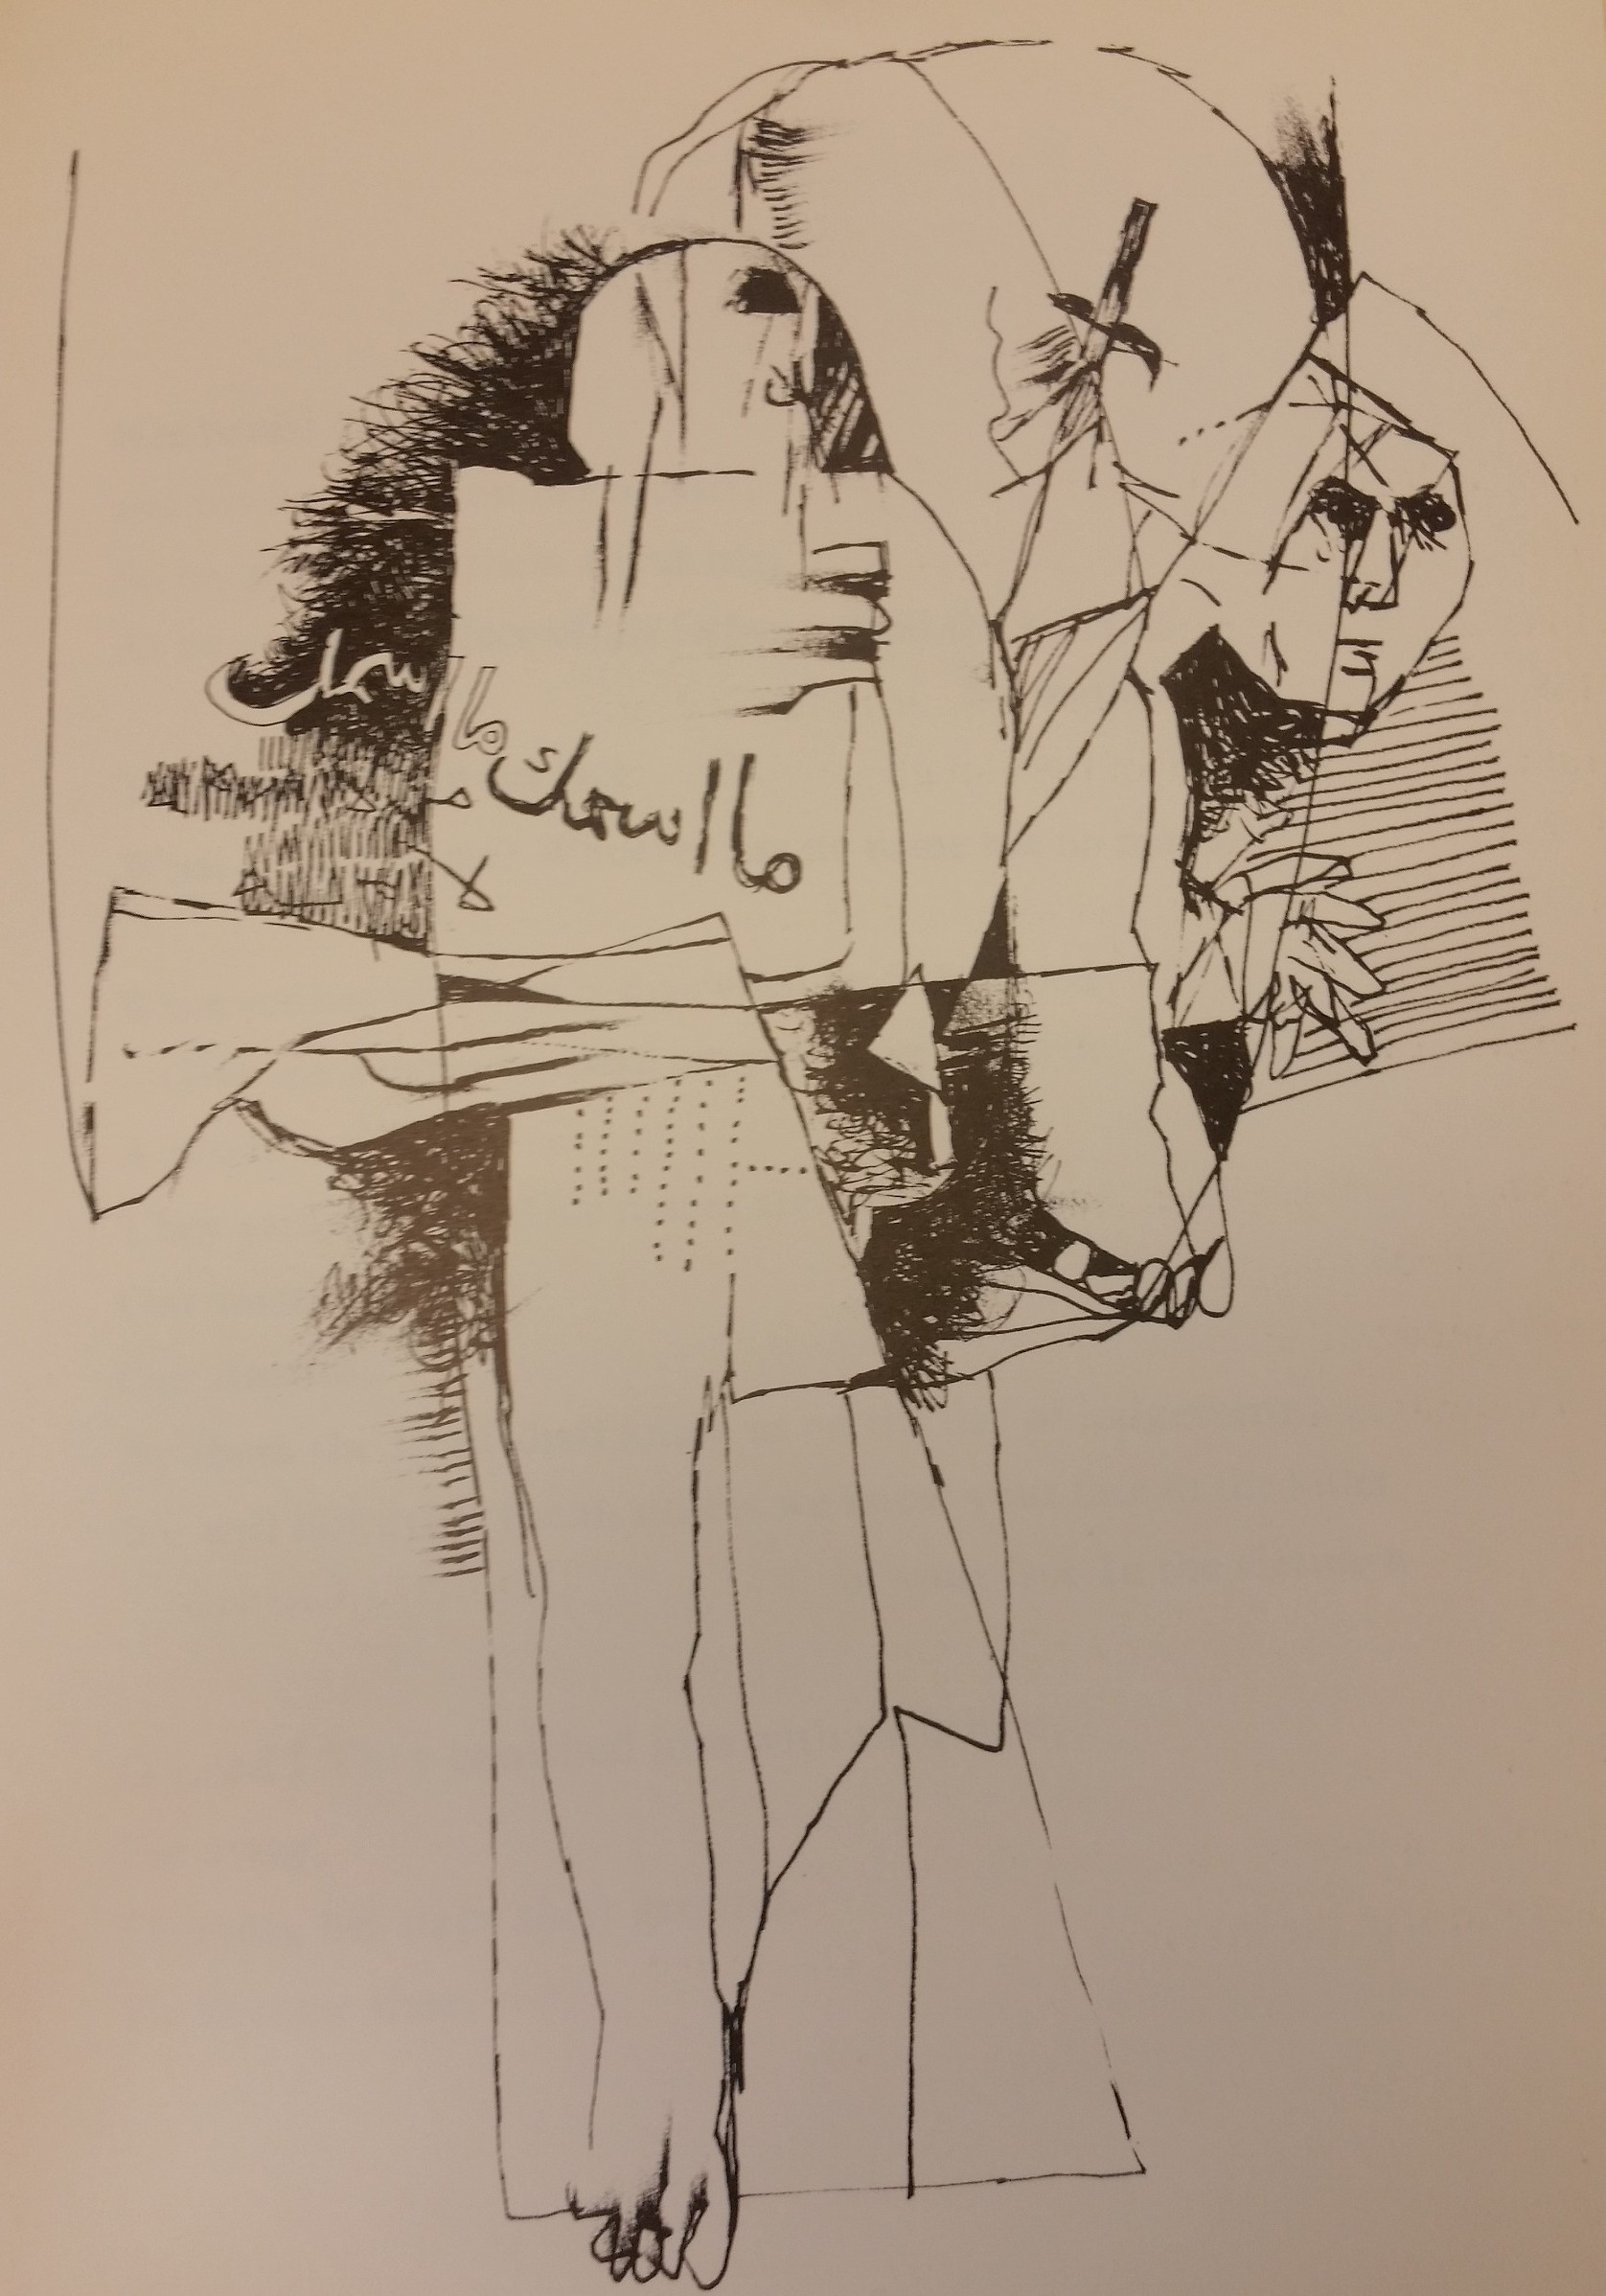 From Dialogue in Three Dimensions  Illustrations by Dia al-Azzawi